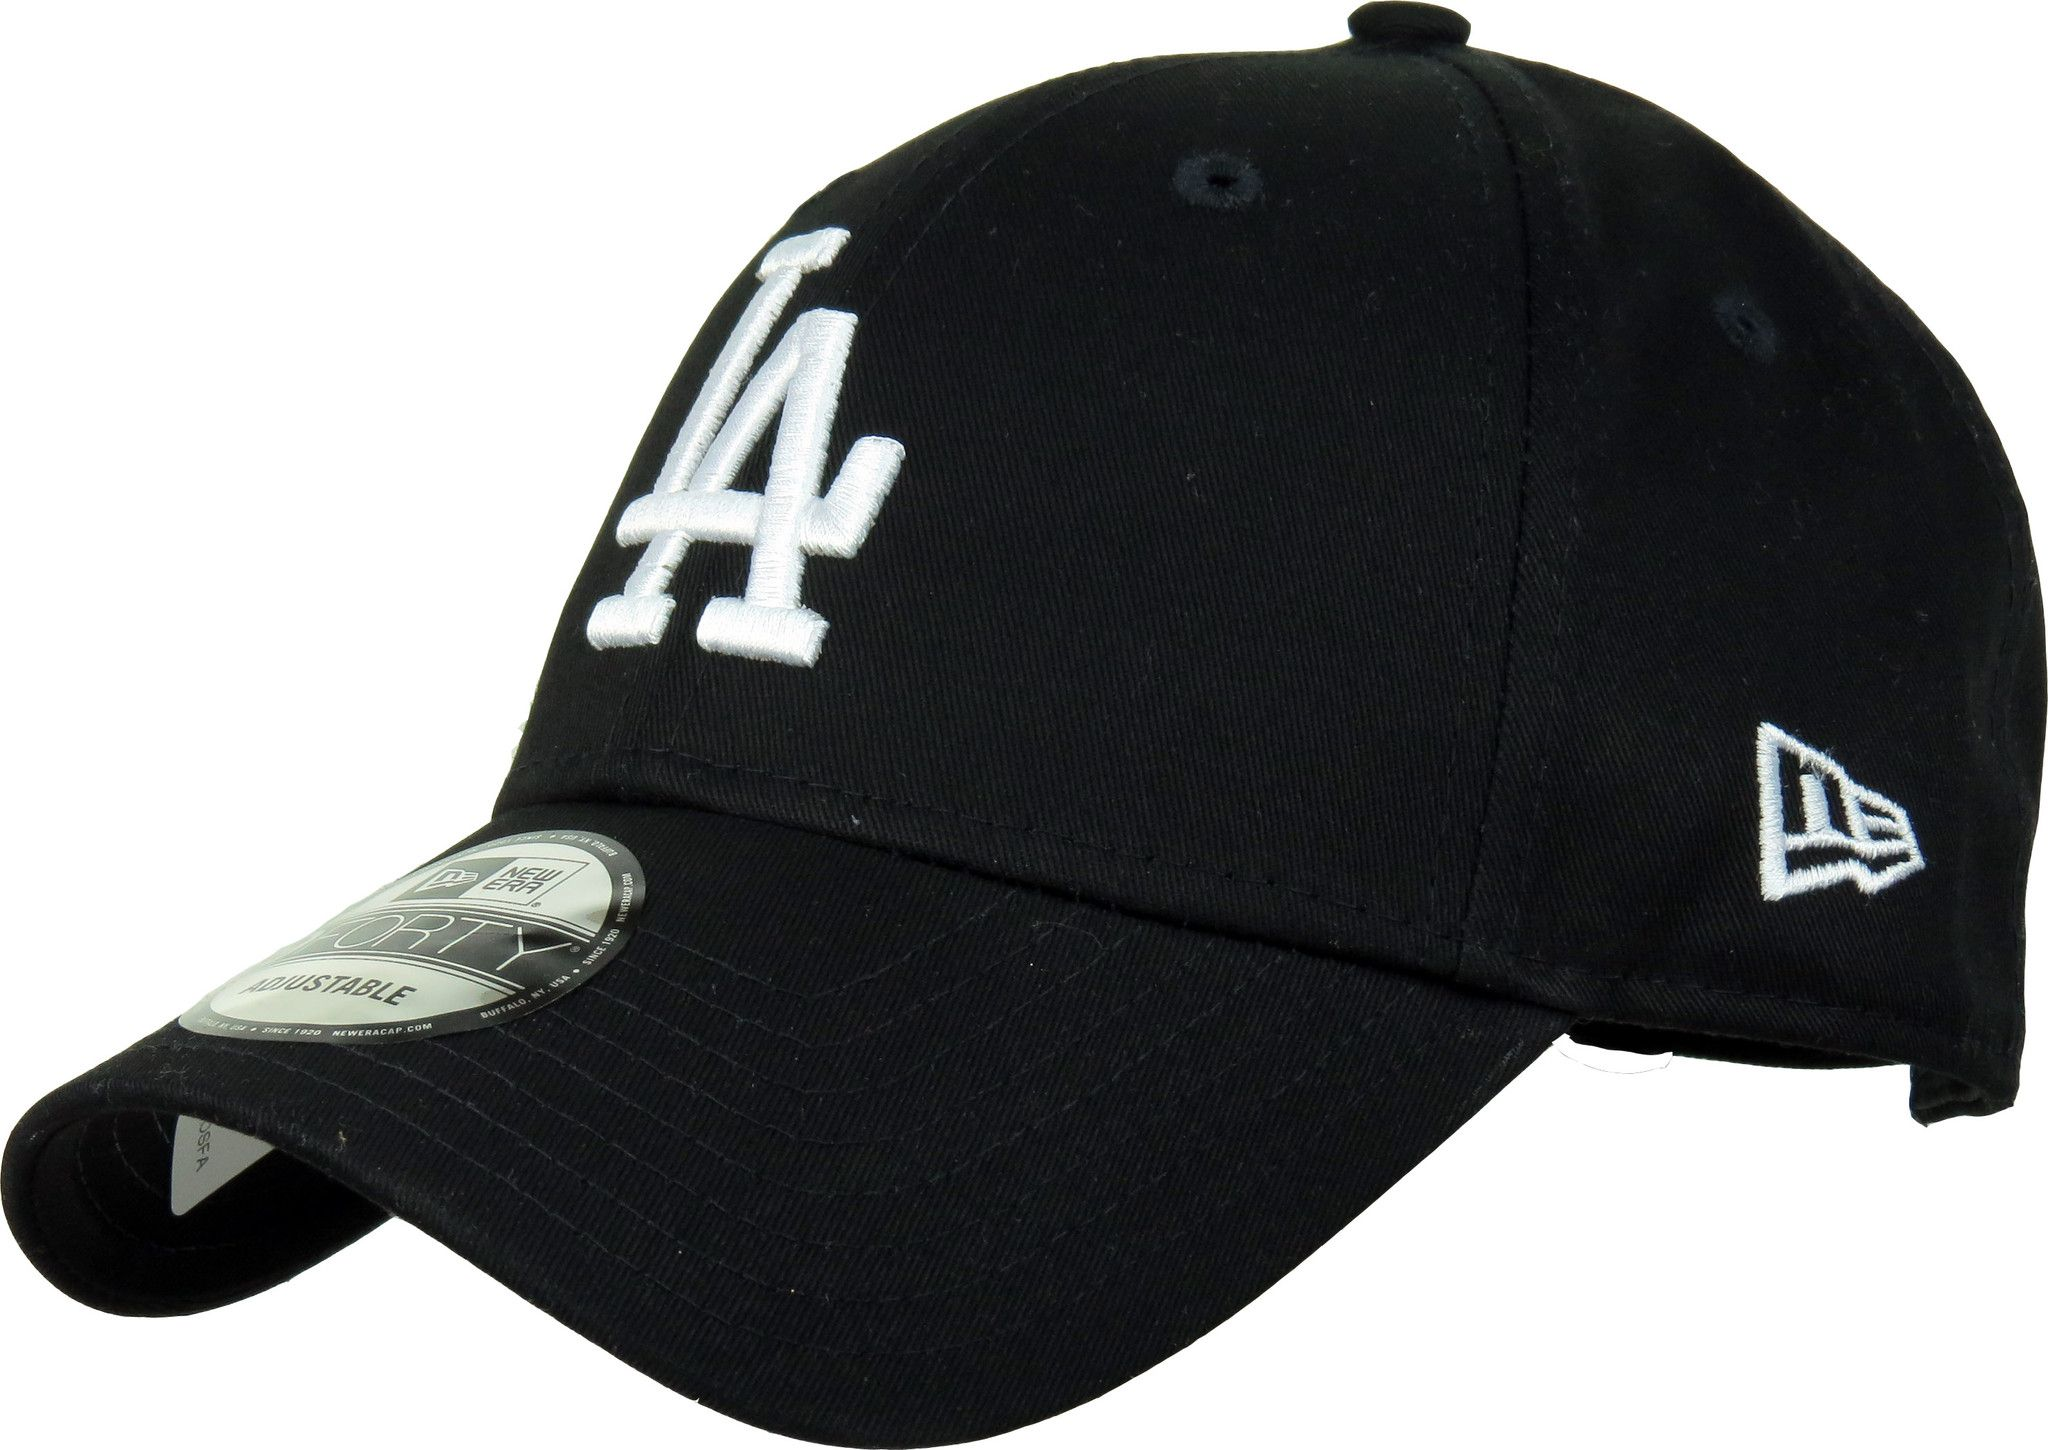 LA Dodgers New Era 940 League Essential Black Baseball Cap  7e821d3eccc